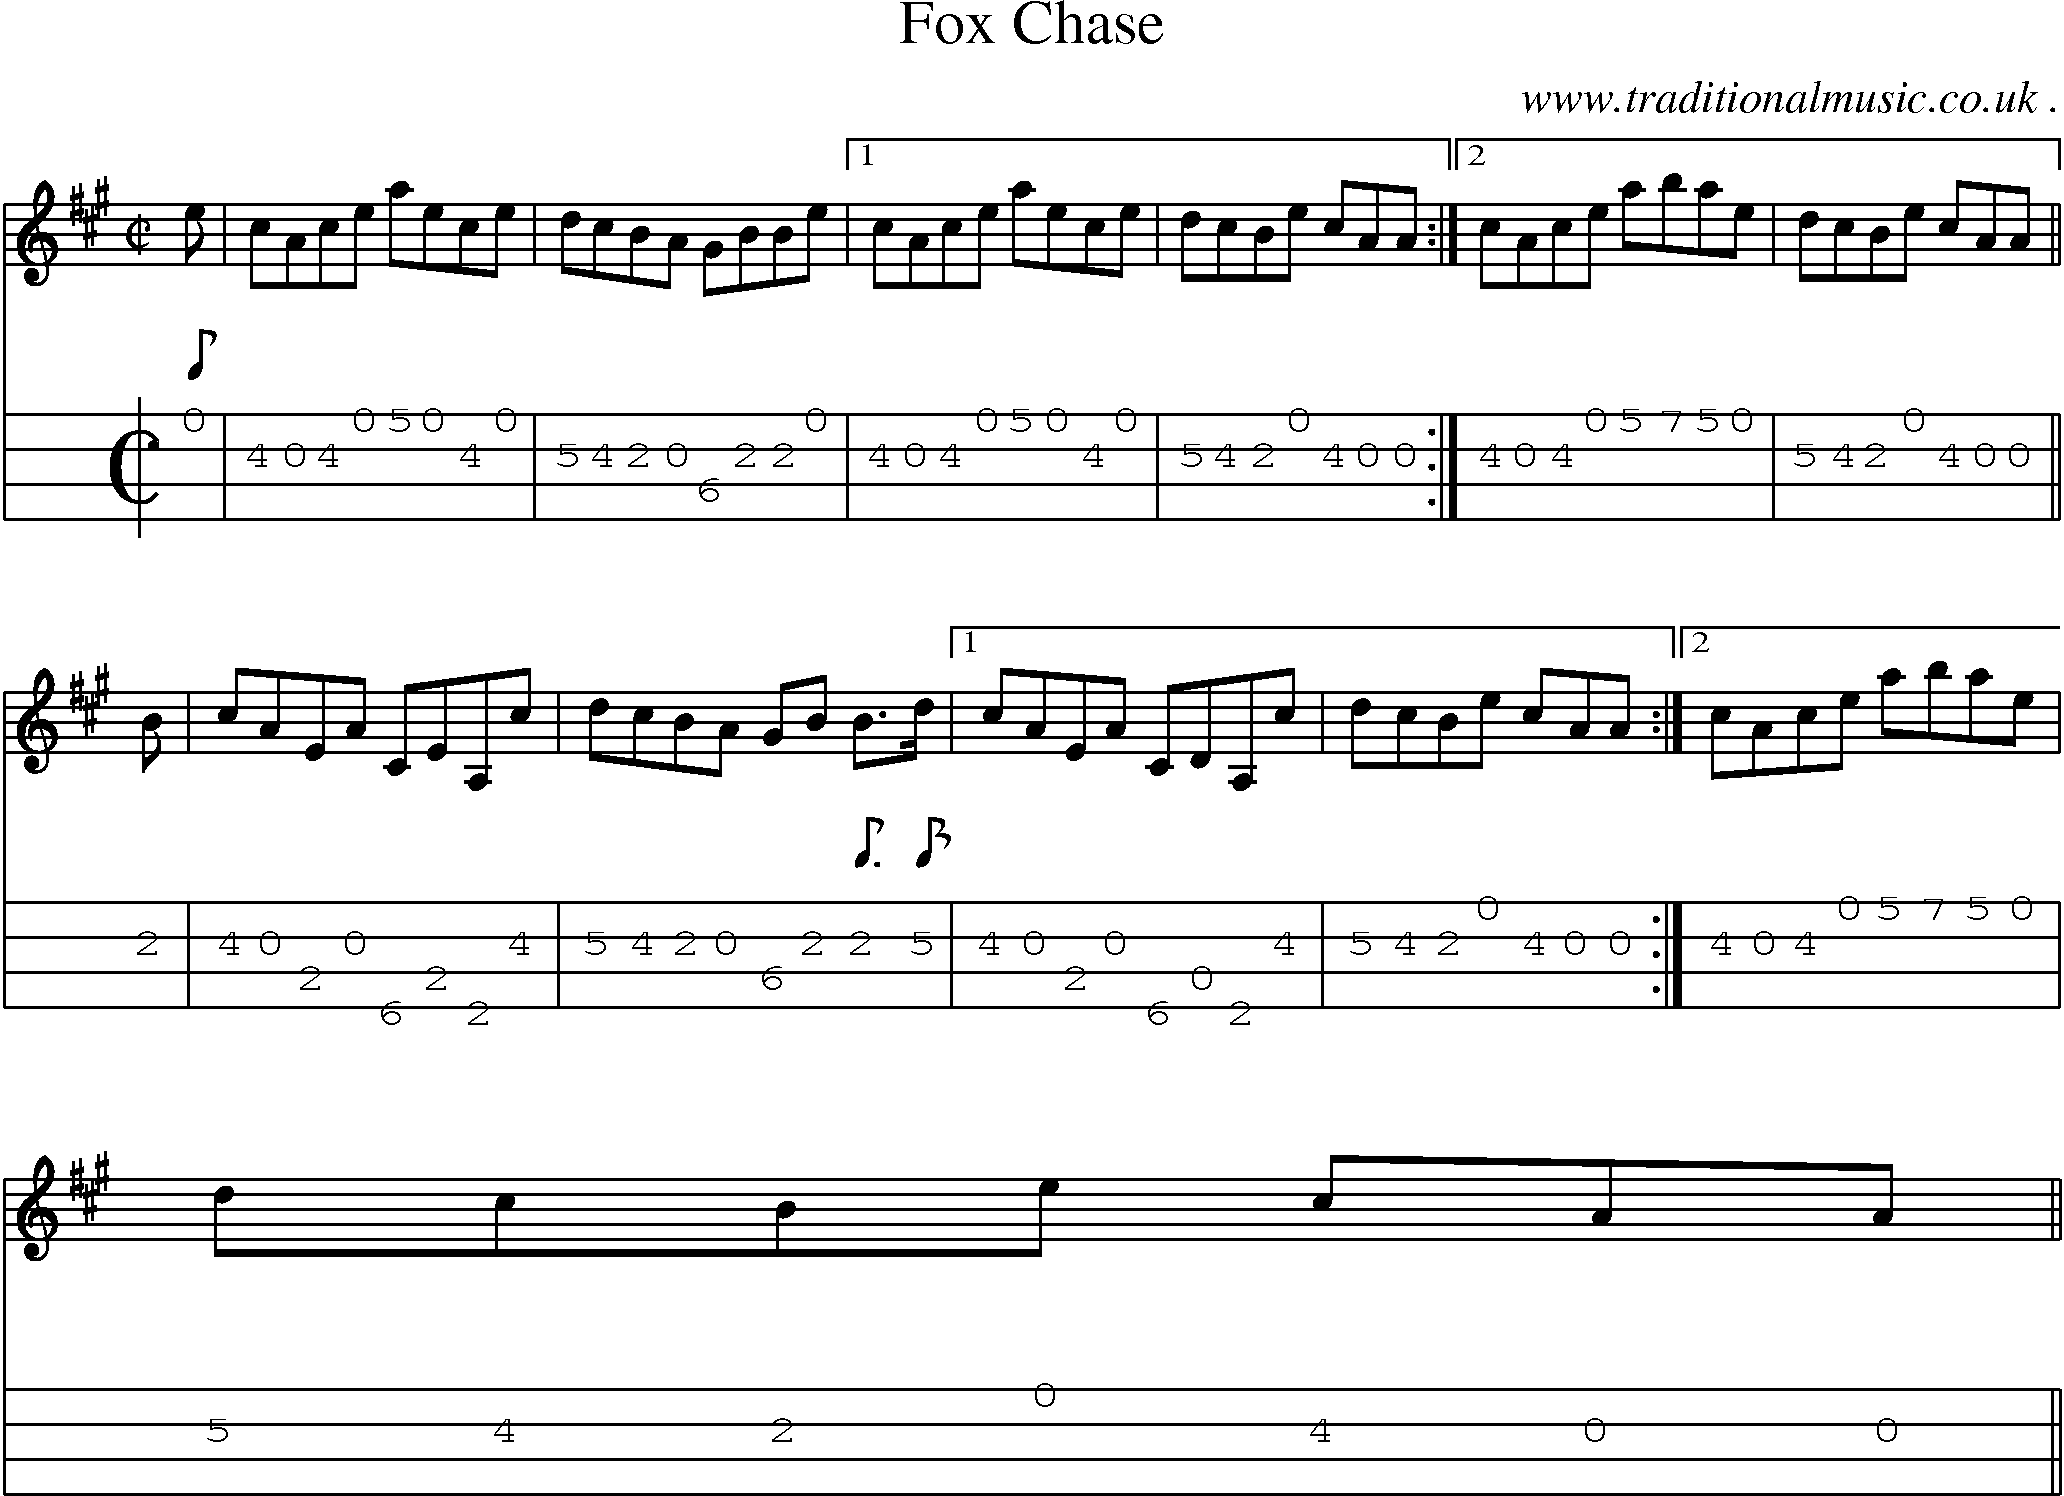 Sheet music score chords and mandolin tabs for fox chase sheet music score chords and mandolin tabs for fox chase hexwebz Images